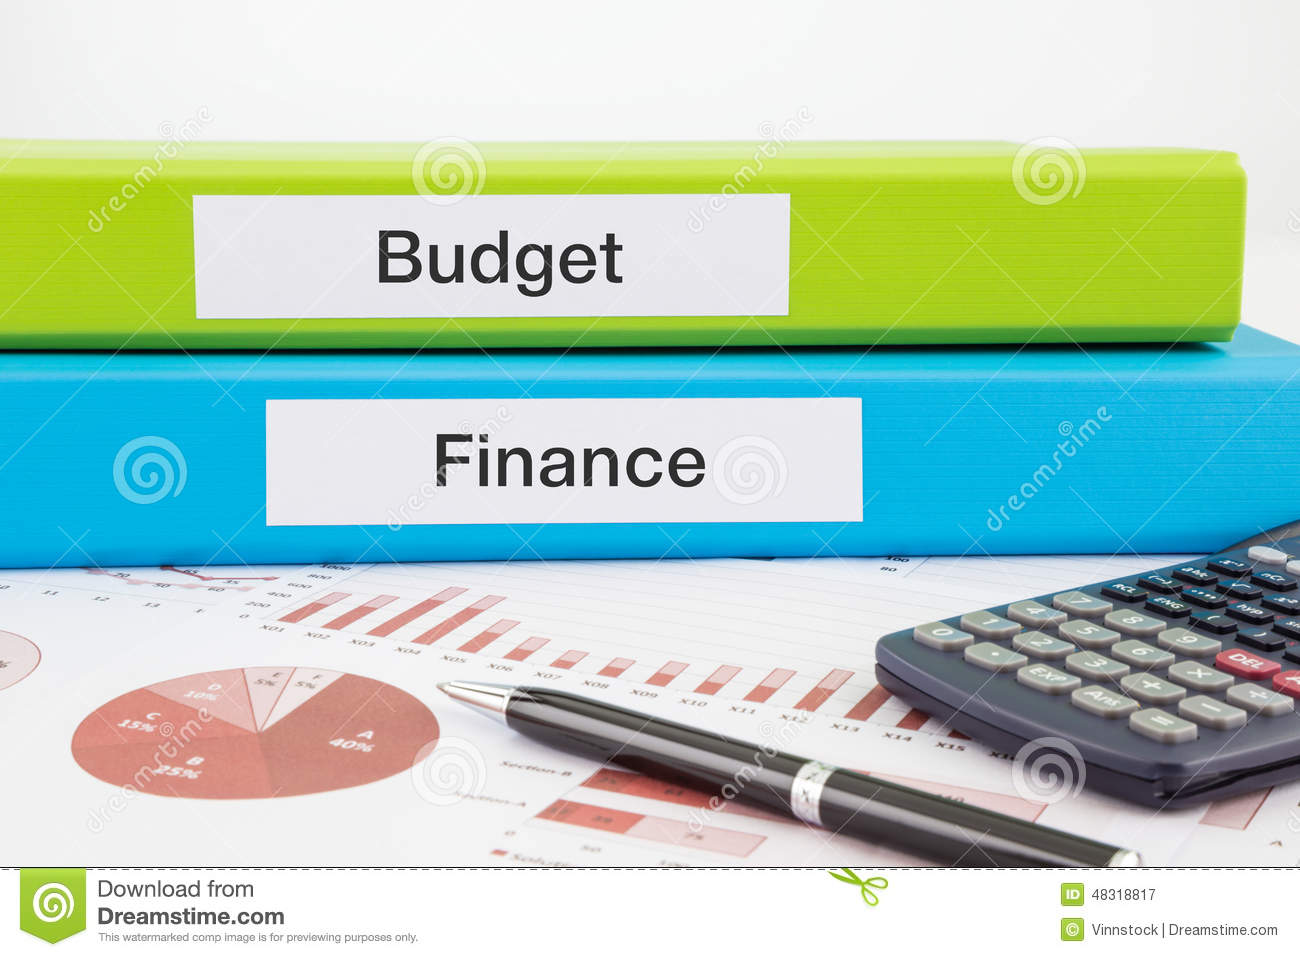 how to create a budget document